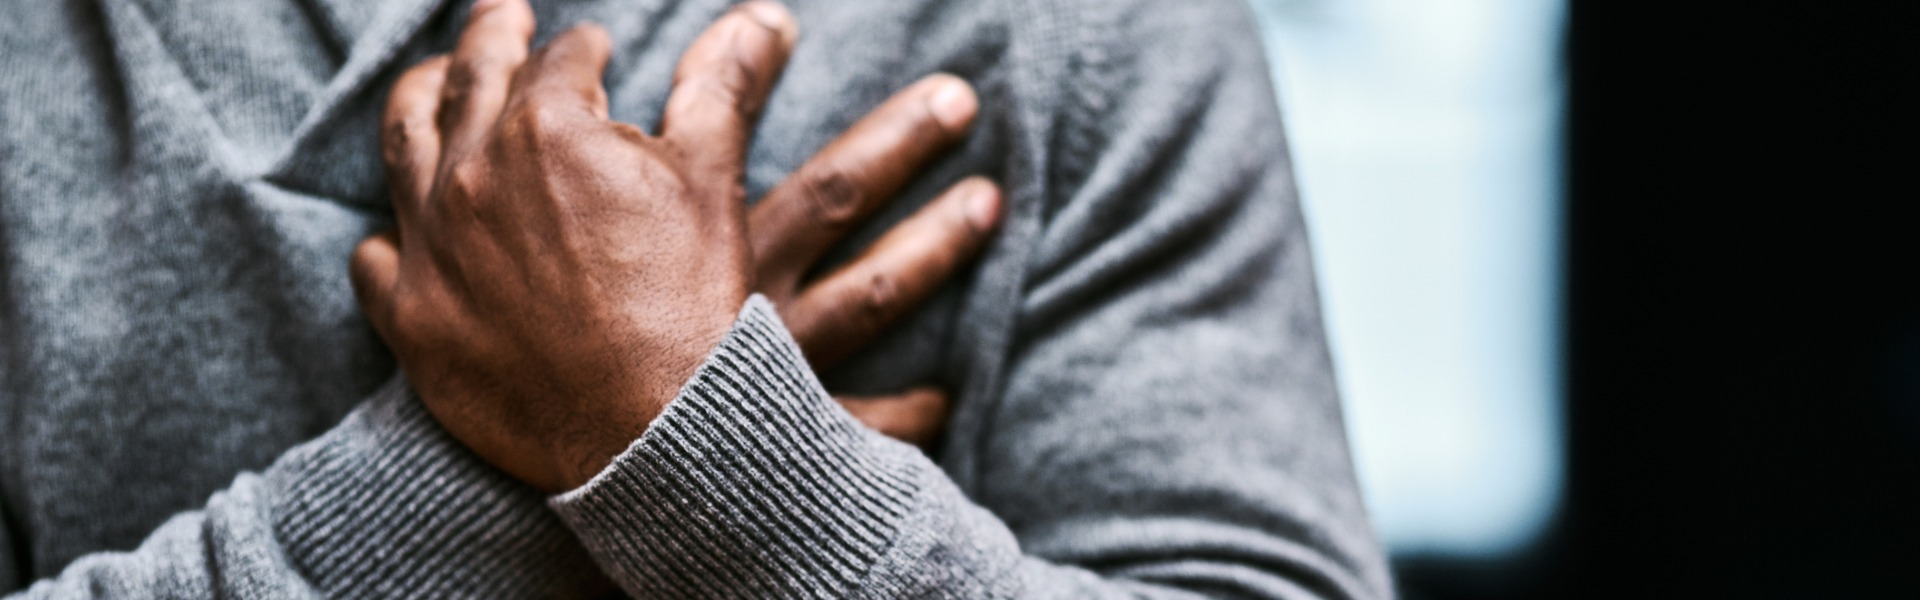 common causes of chest pain _ mercy health blog